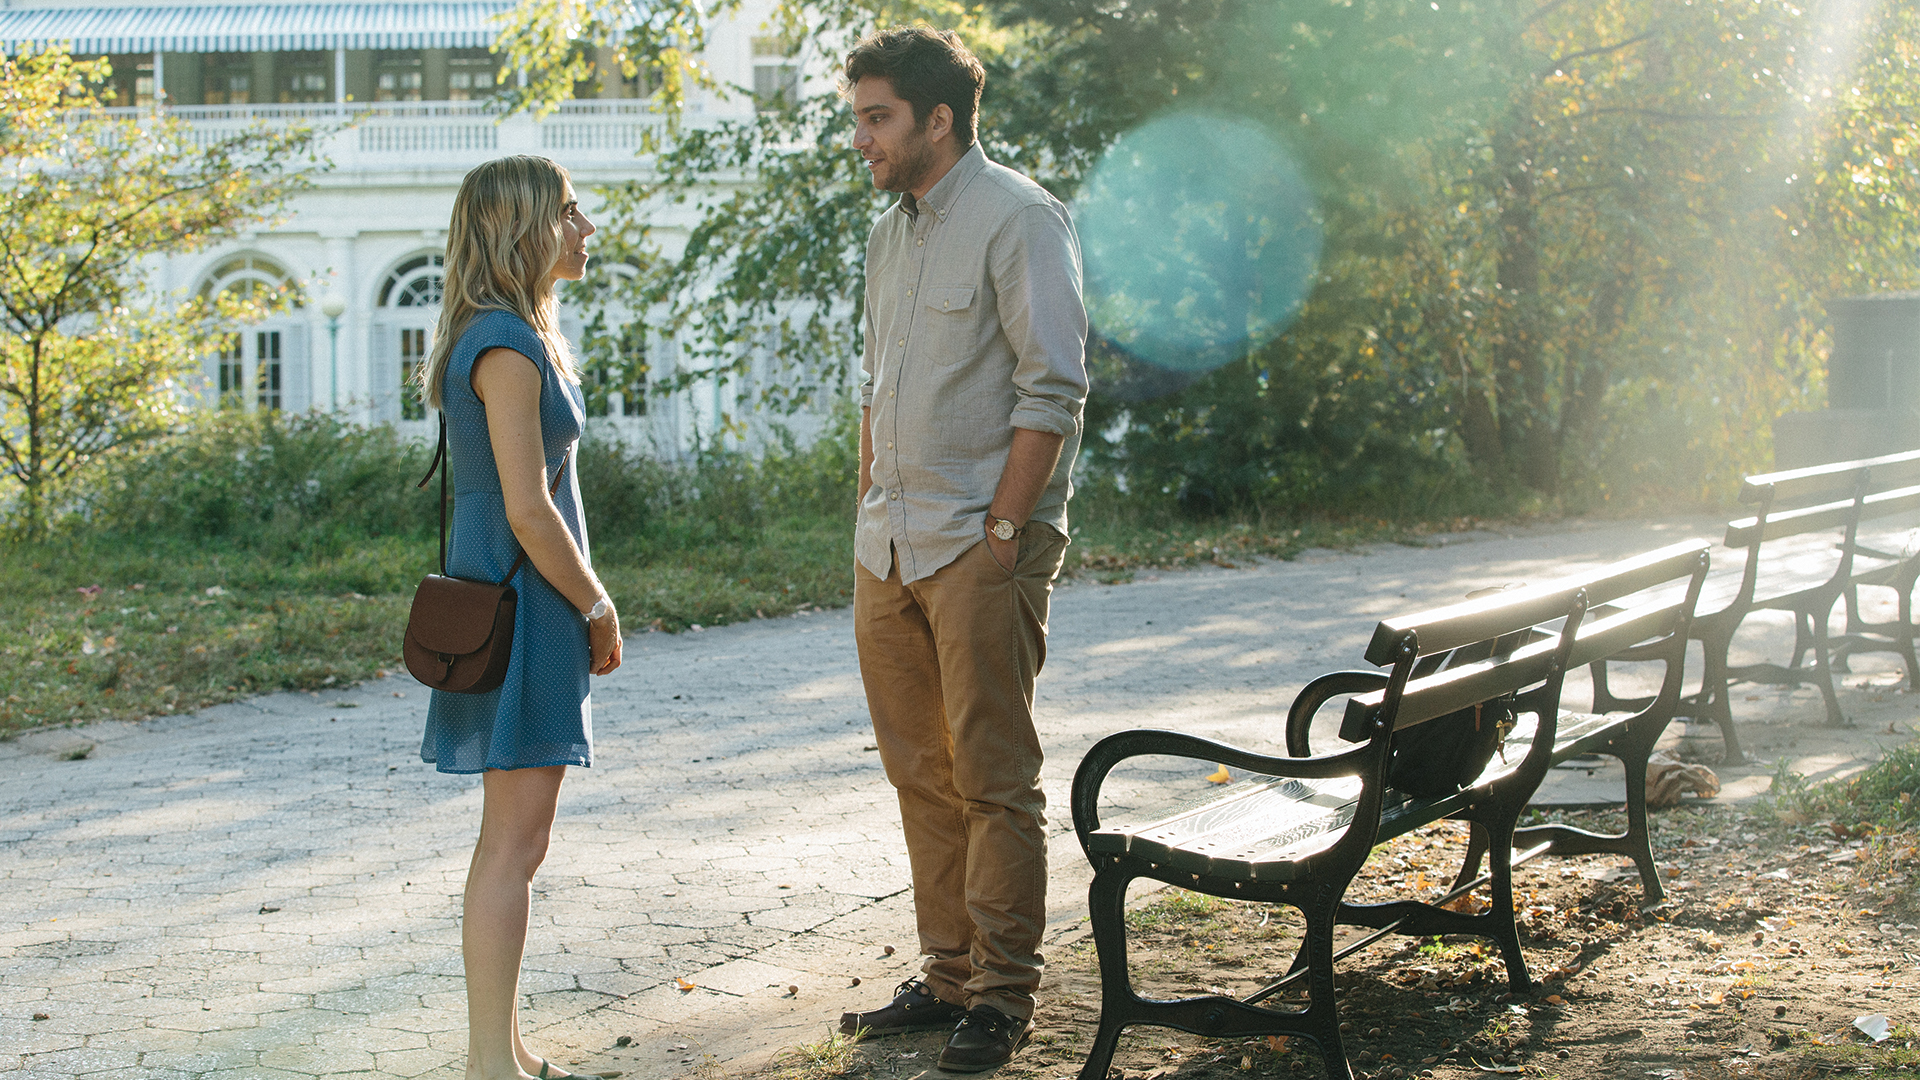 Zosia Mamet as Diana and Matt Schear as Ben in THE BOY DOWNSTAIRS. Photo by Jon Pack.